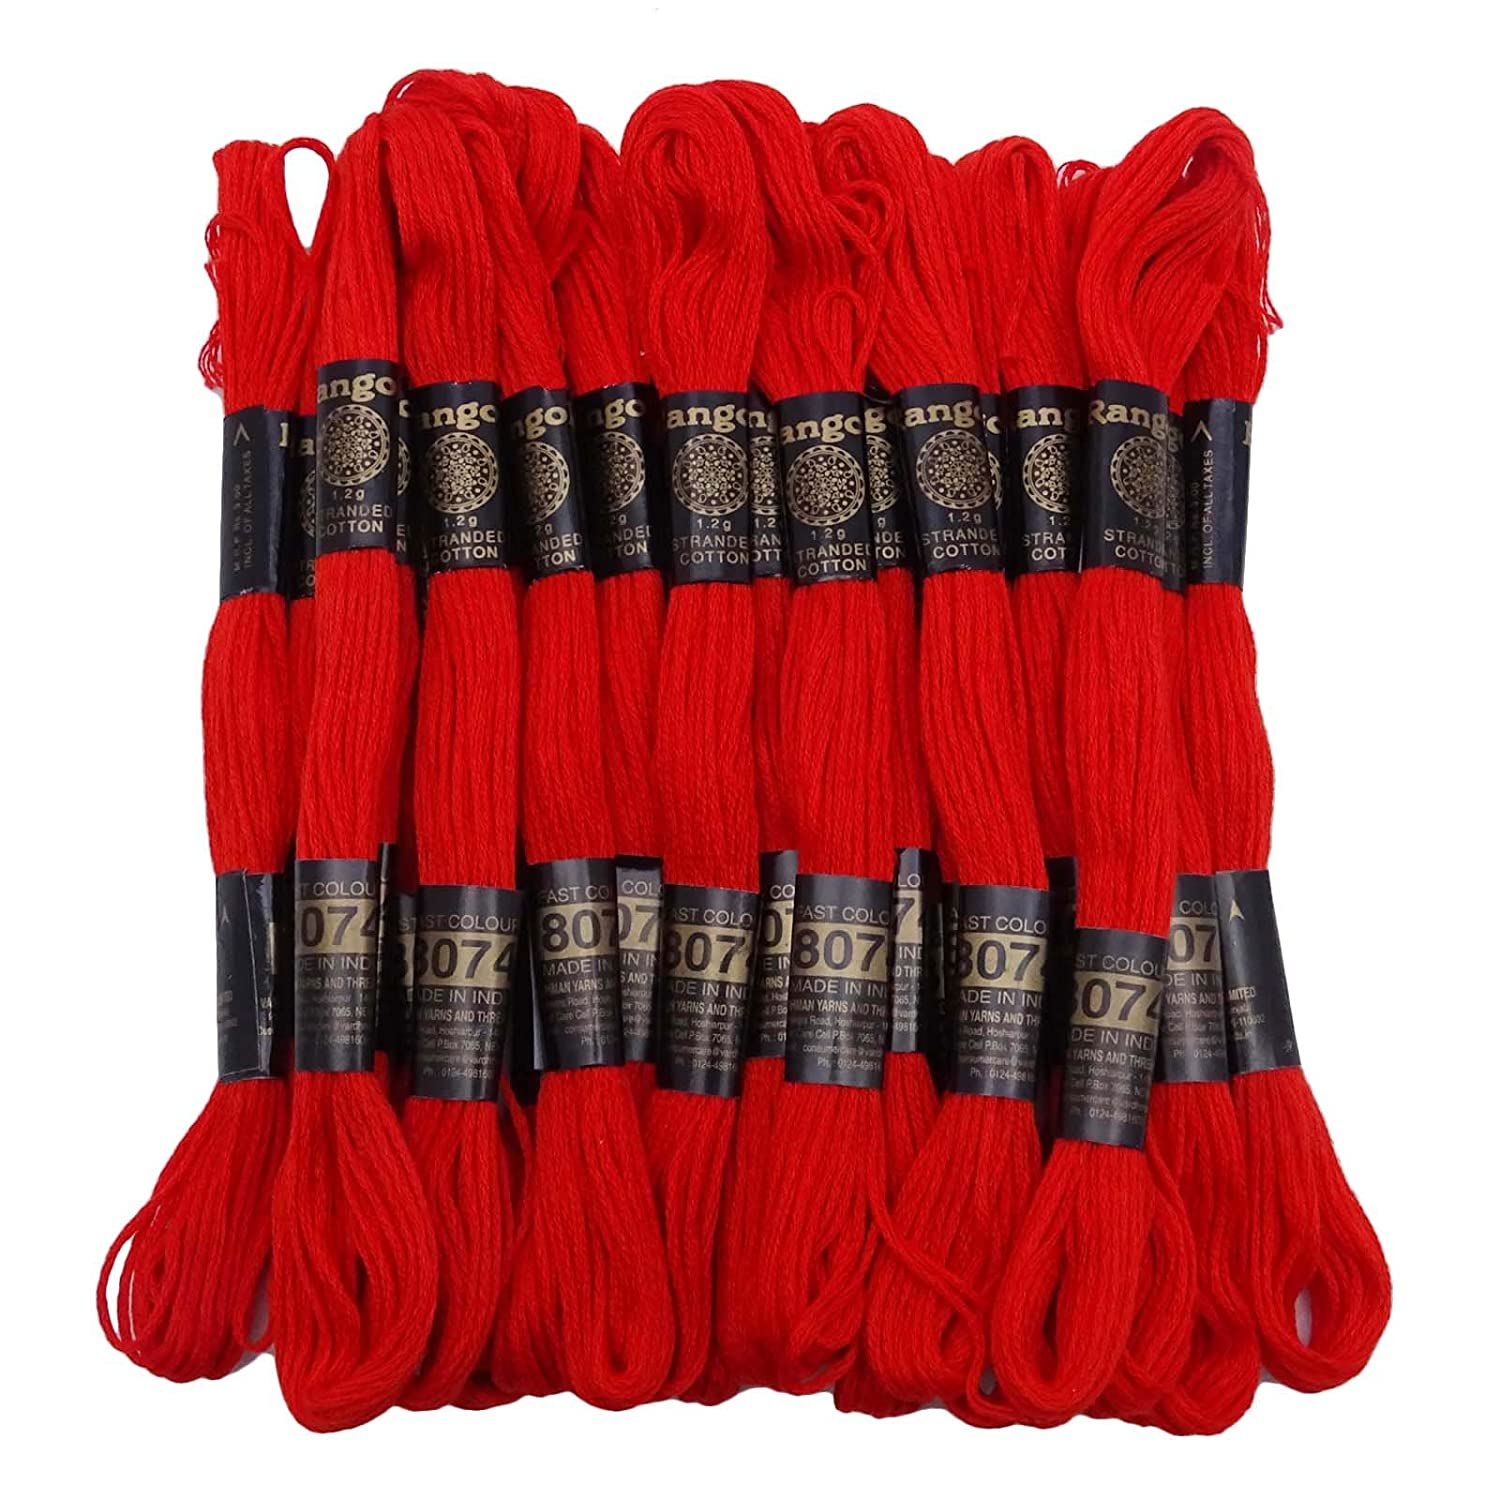 25 Pcs Brown Cotton Thread Floss Sewing Skein Embroidery Stitch Needlepoint Knitwit